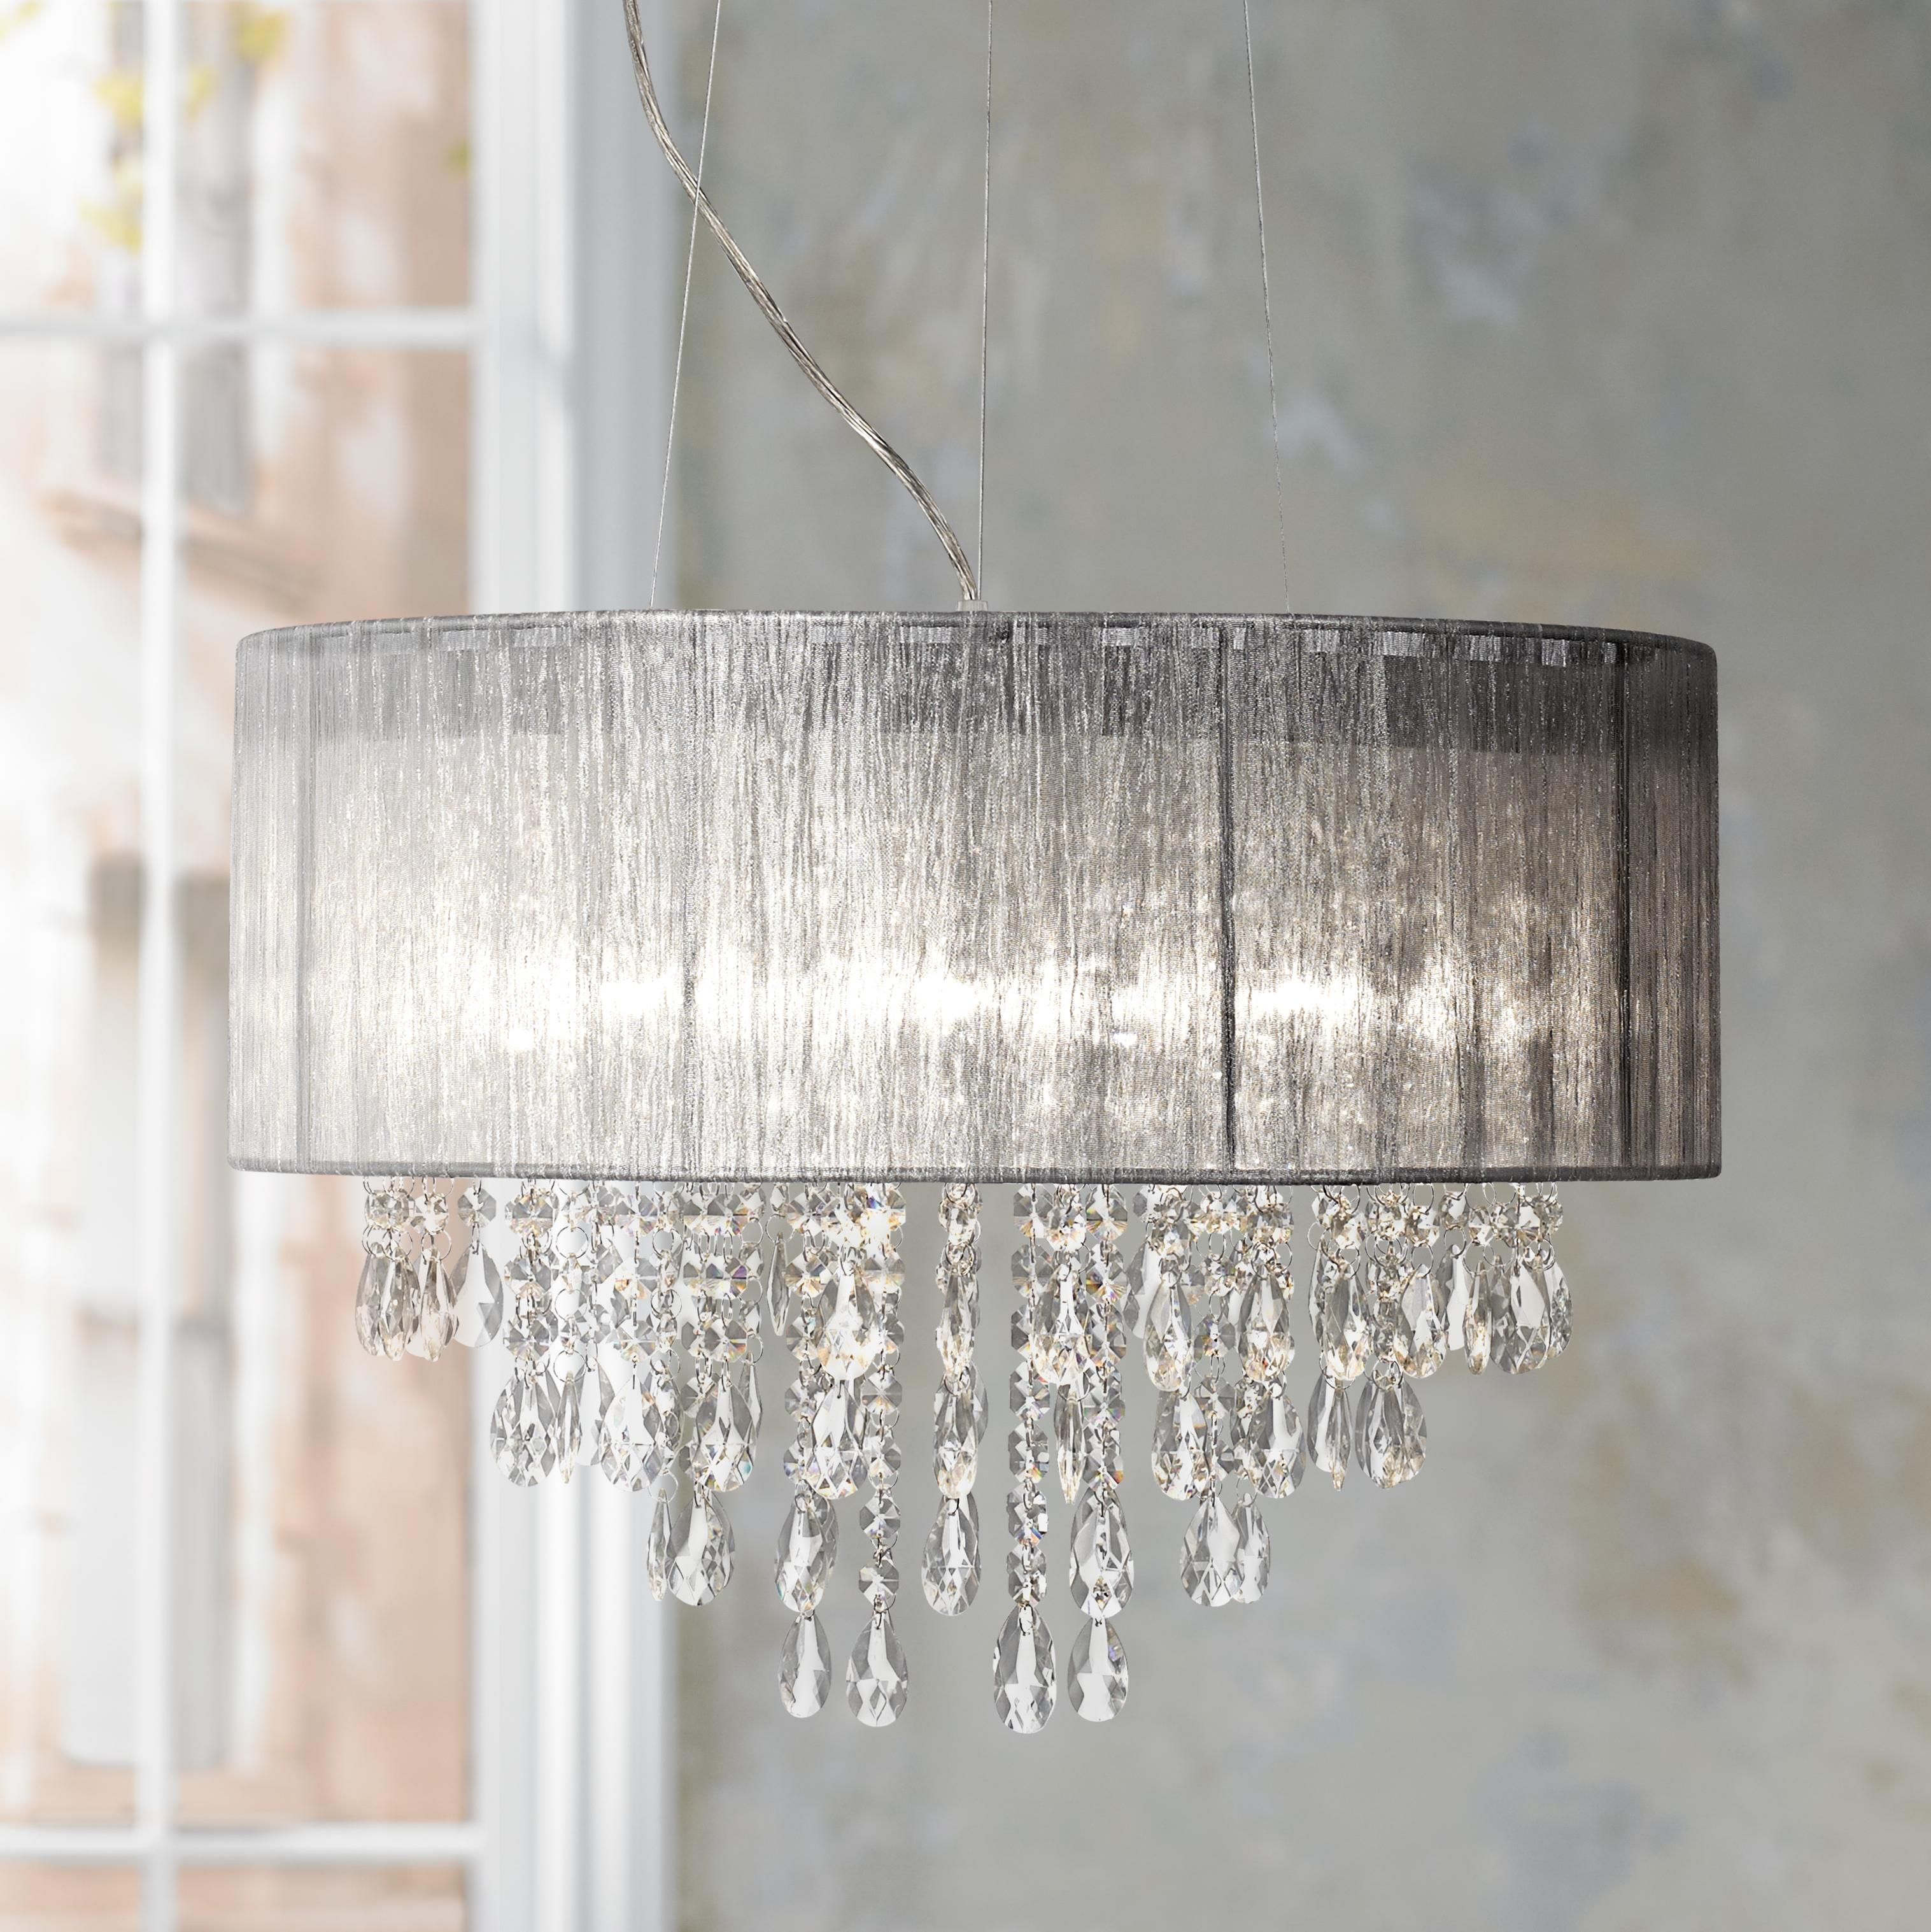 Possini euro metairie 20w silver fabric crystal chandelier classic ceiling silver fabric